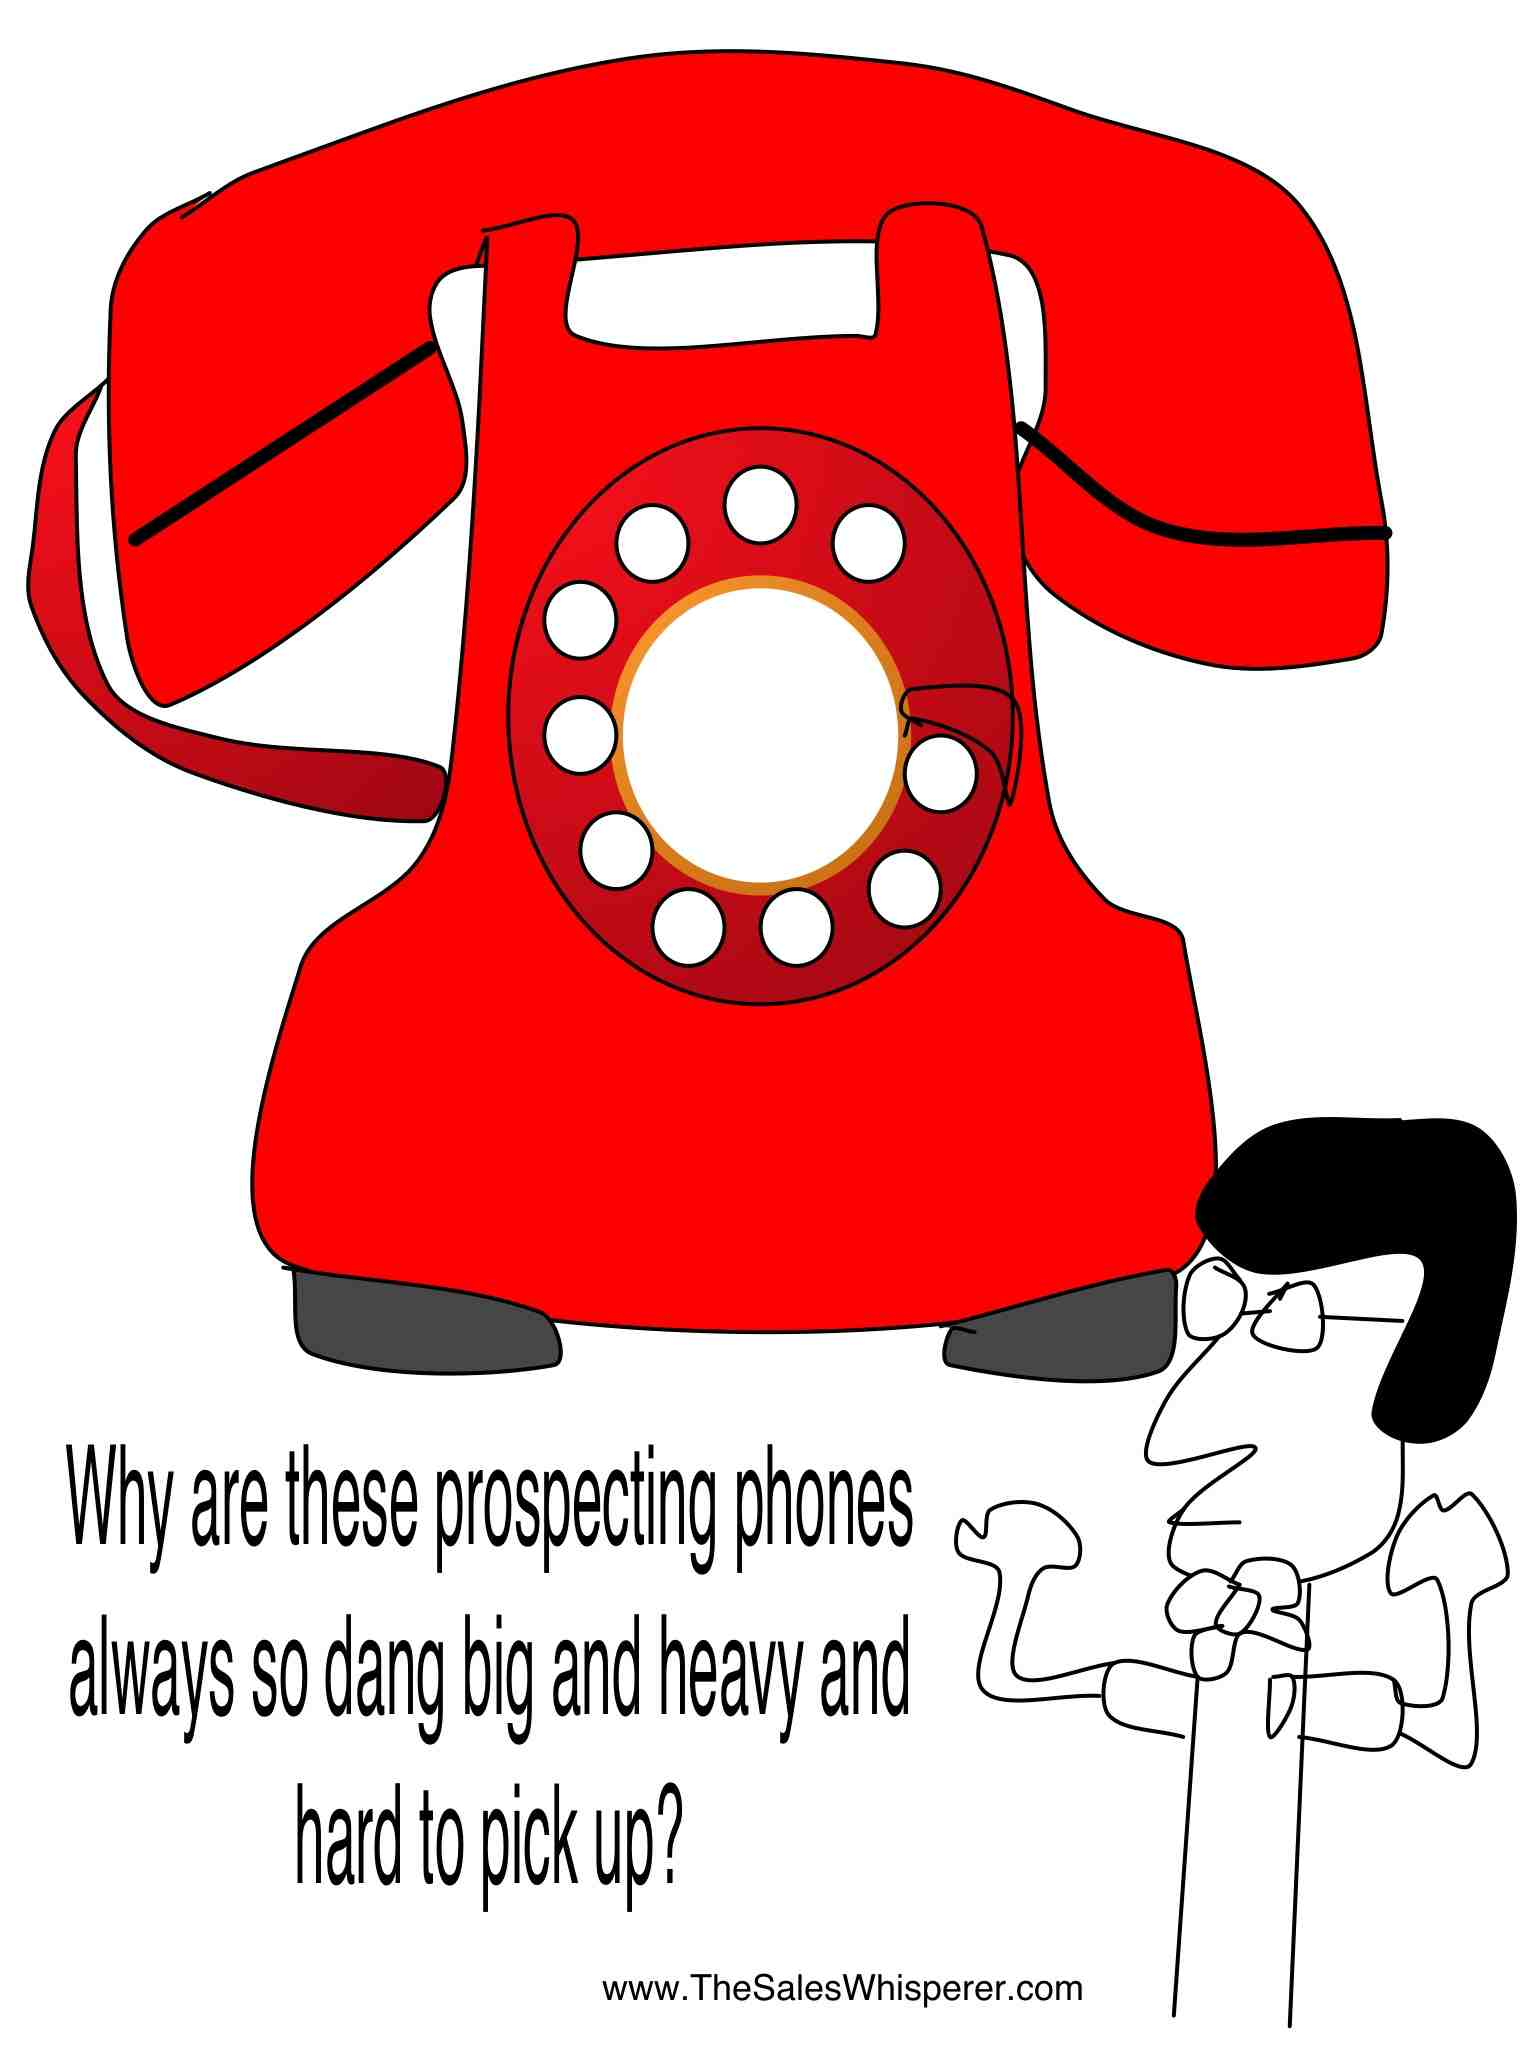 The Wimpy Salesman is afraid of making cold calls to grow sales.